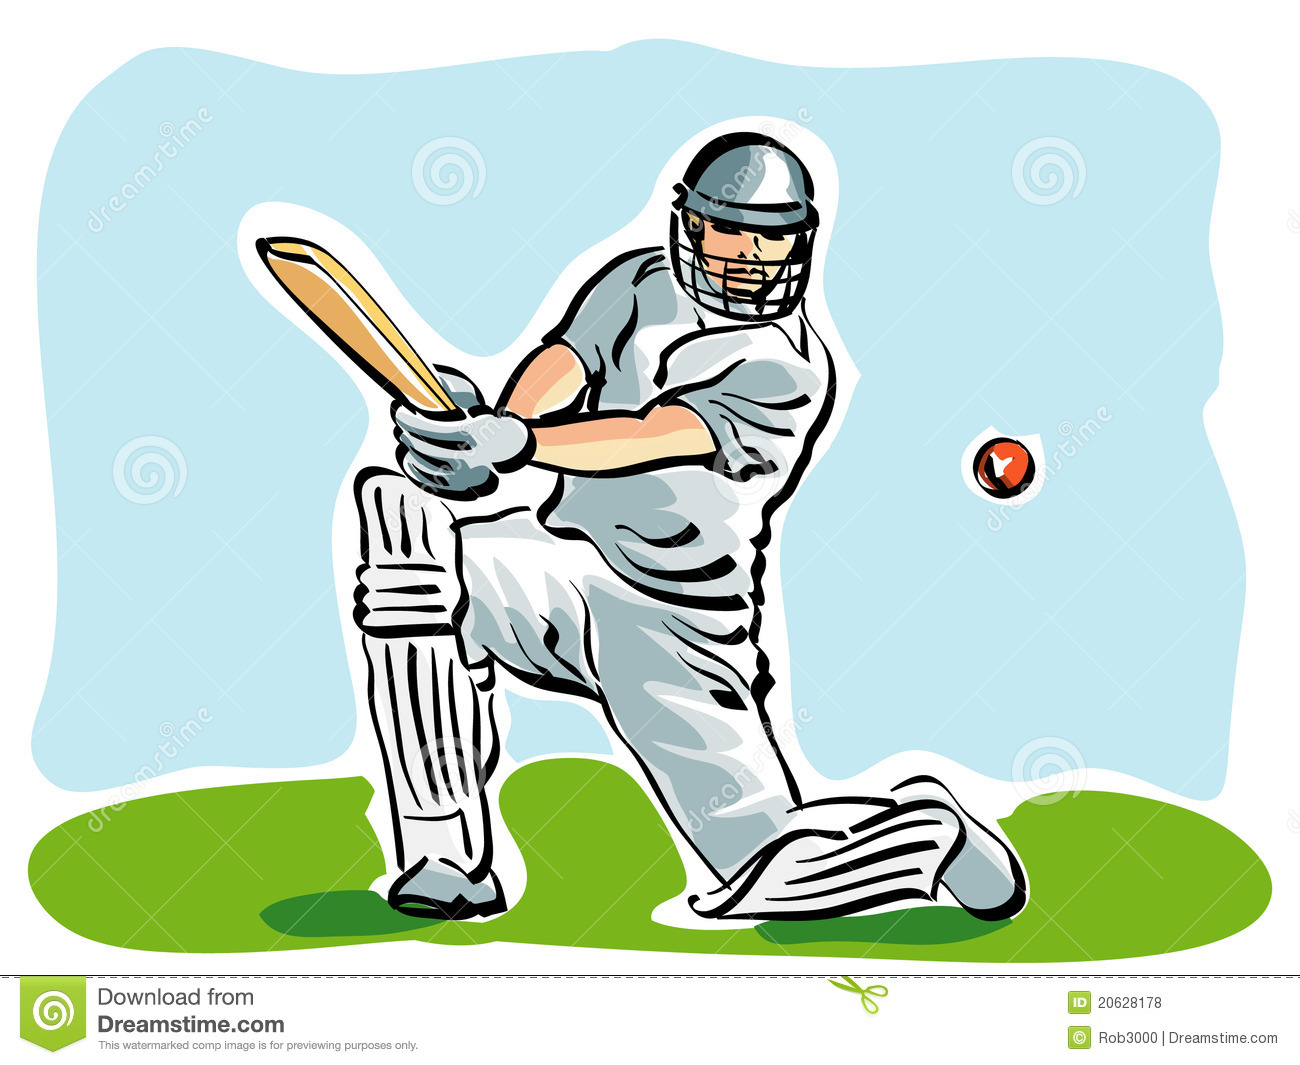 Cricket Royalty Free Stock Photos - Image: 20628178